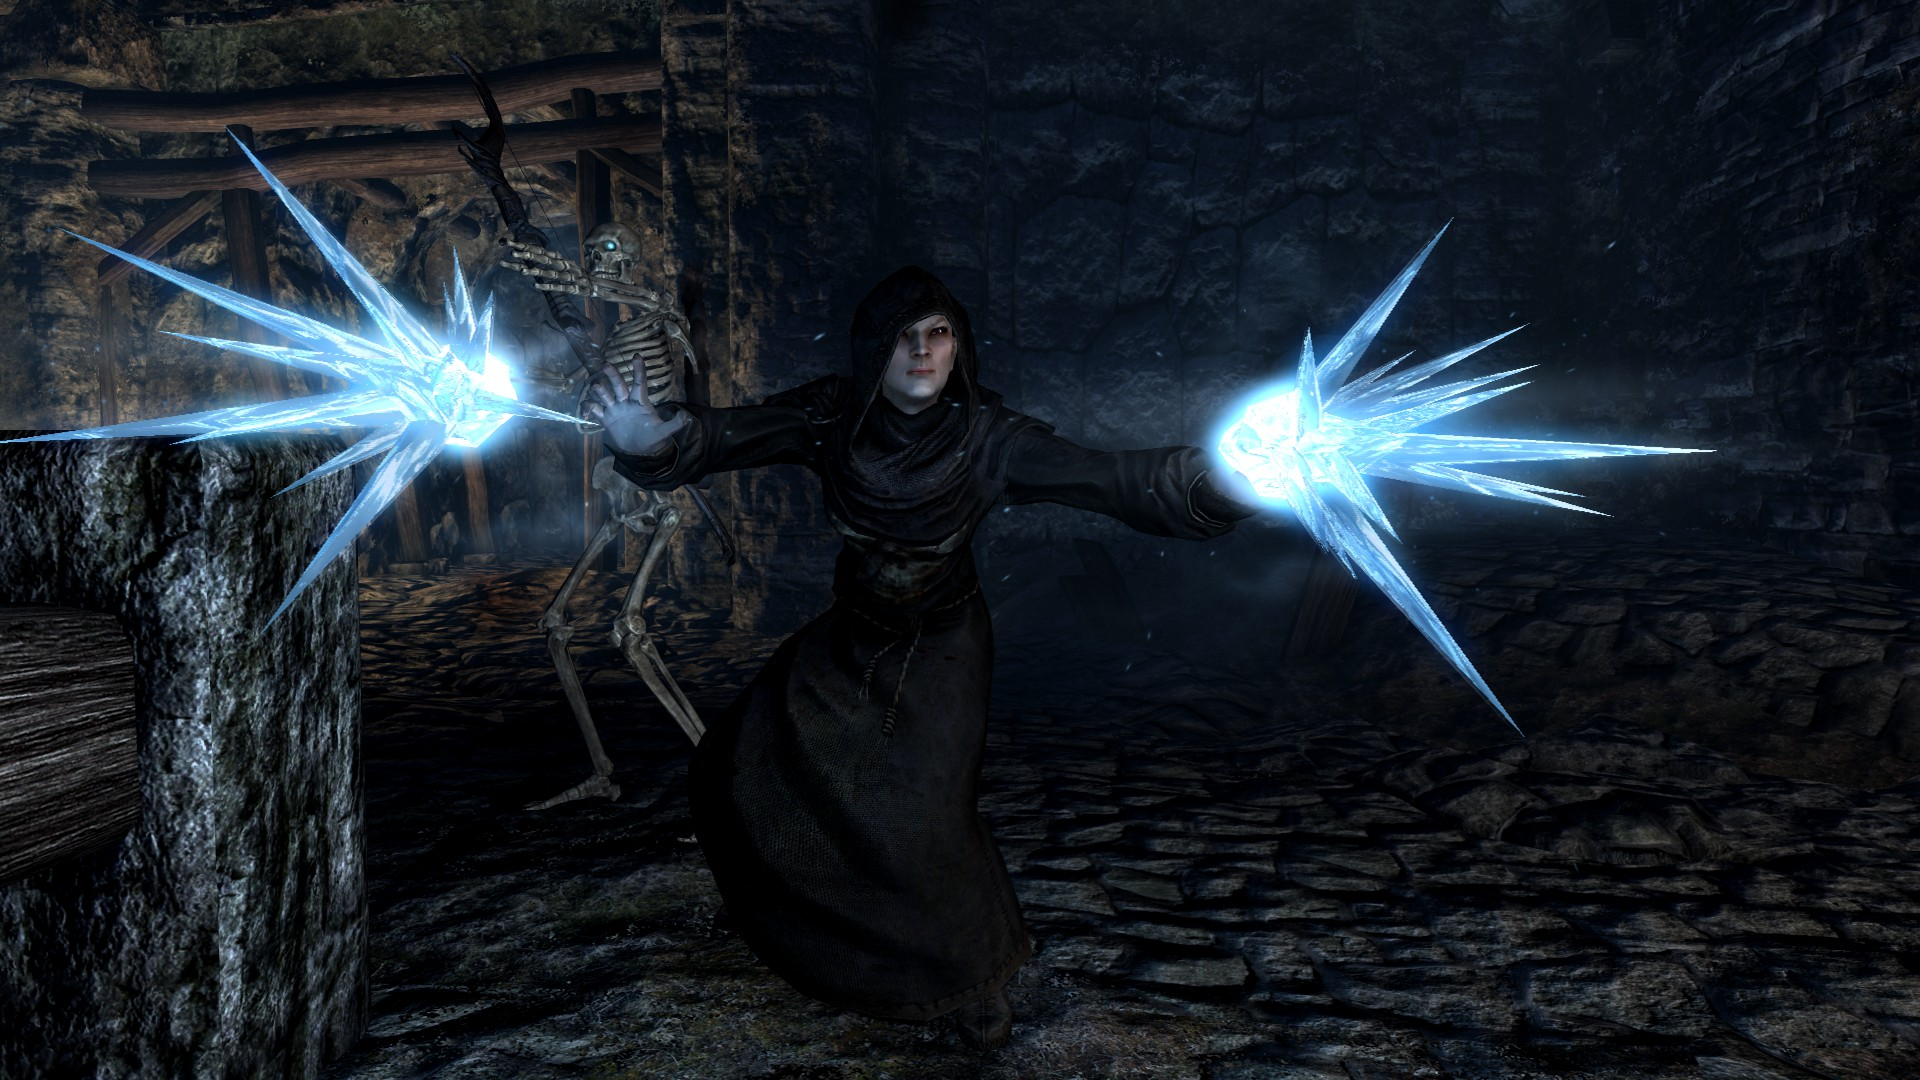 A 5.6 GB mod for Skyrim changes all dungeon textures